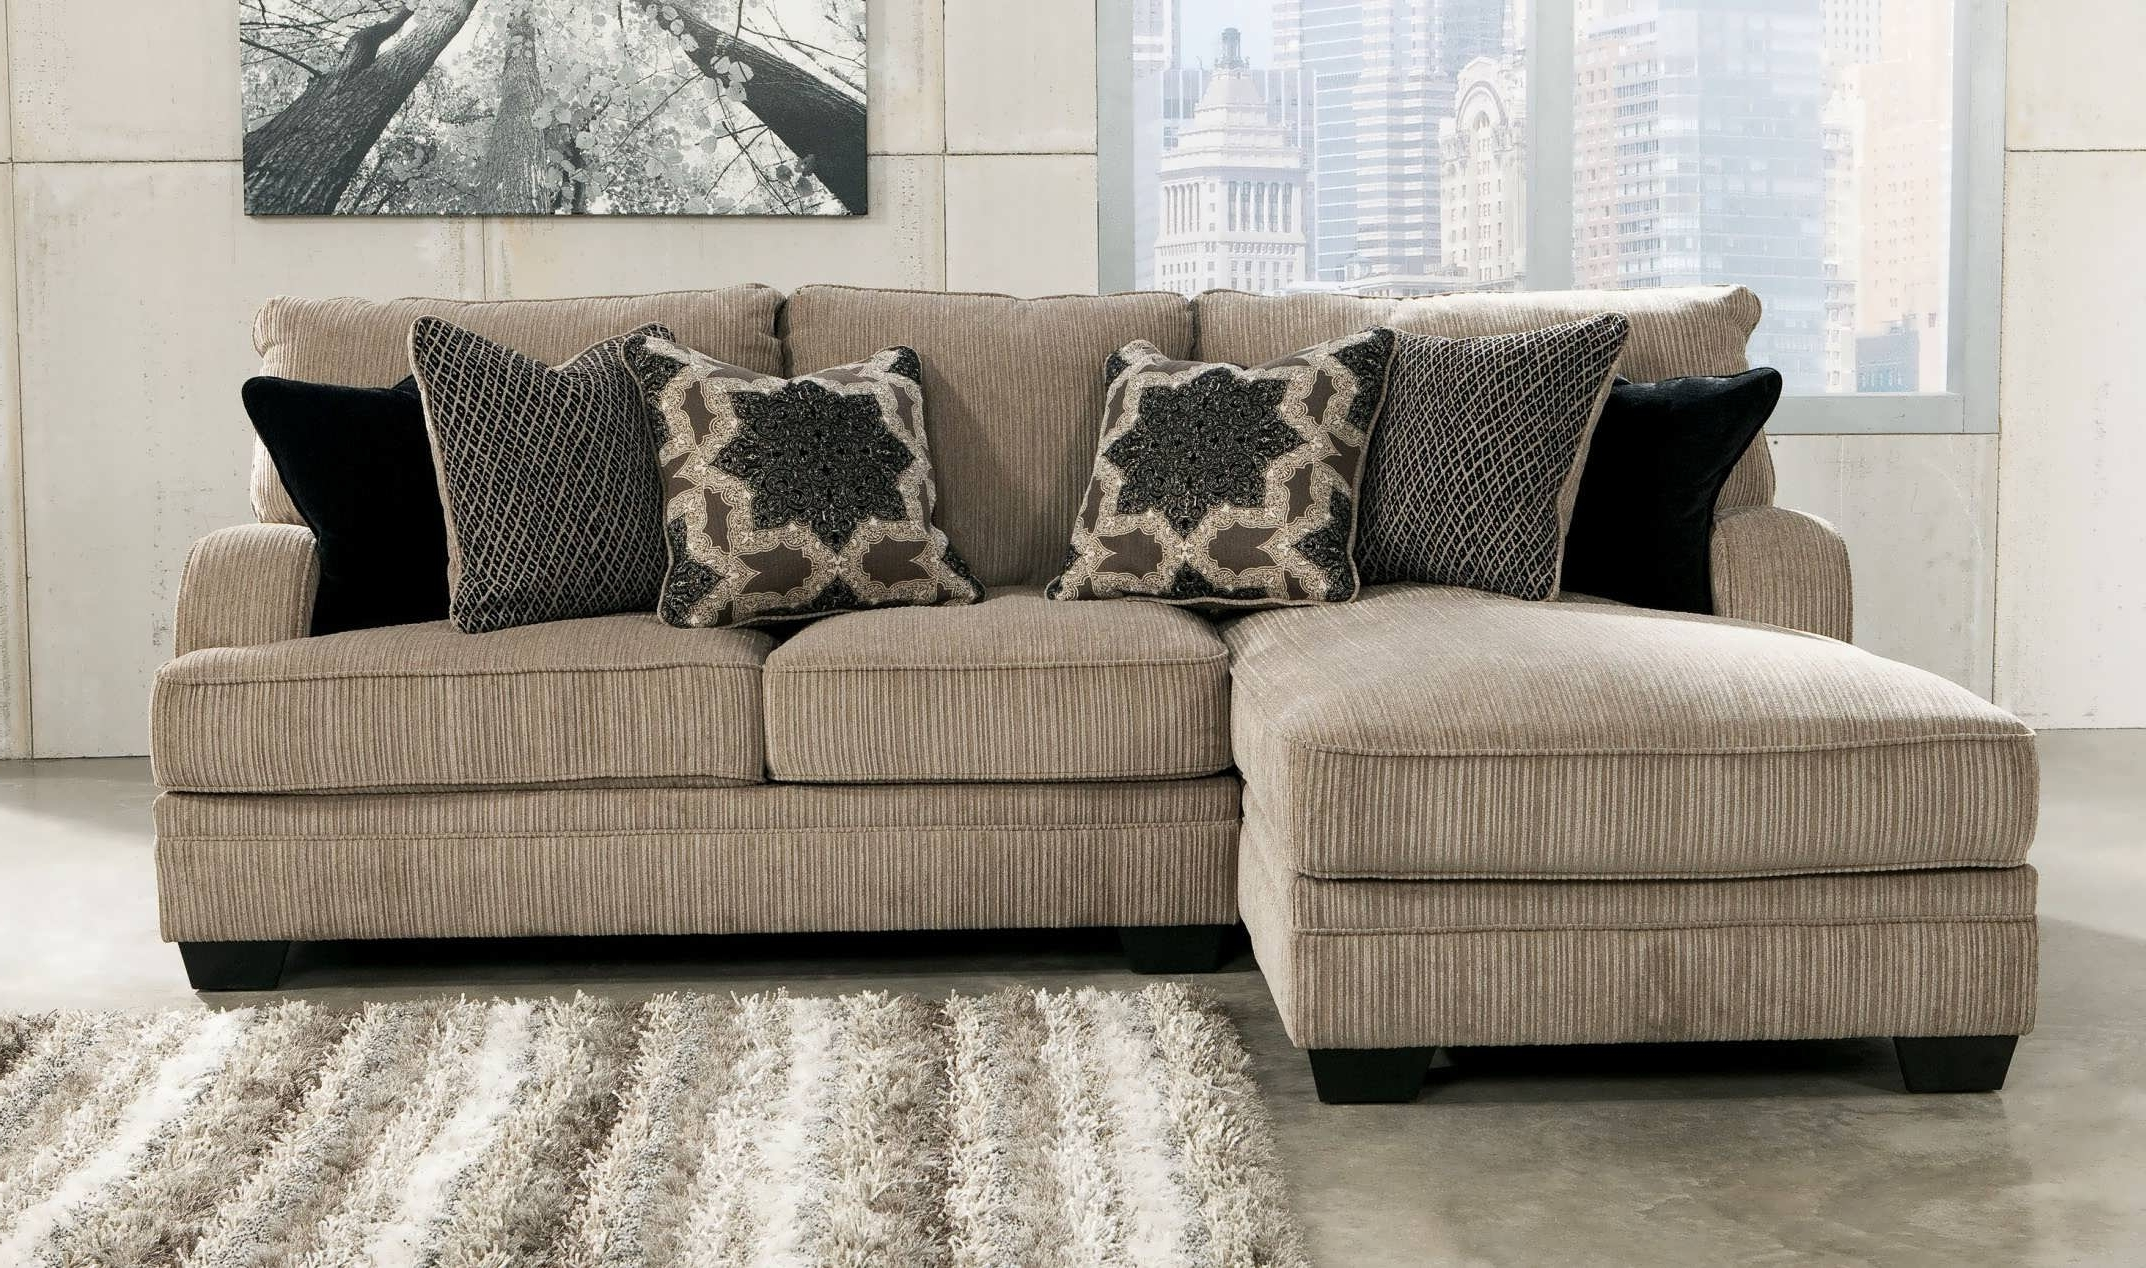 Sofa : Small Gray Sectional Best Sectional Couches Chaise Sofa For Newest Small Couches With Chaise Lounge (View 5 of 15)